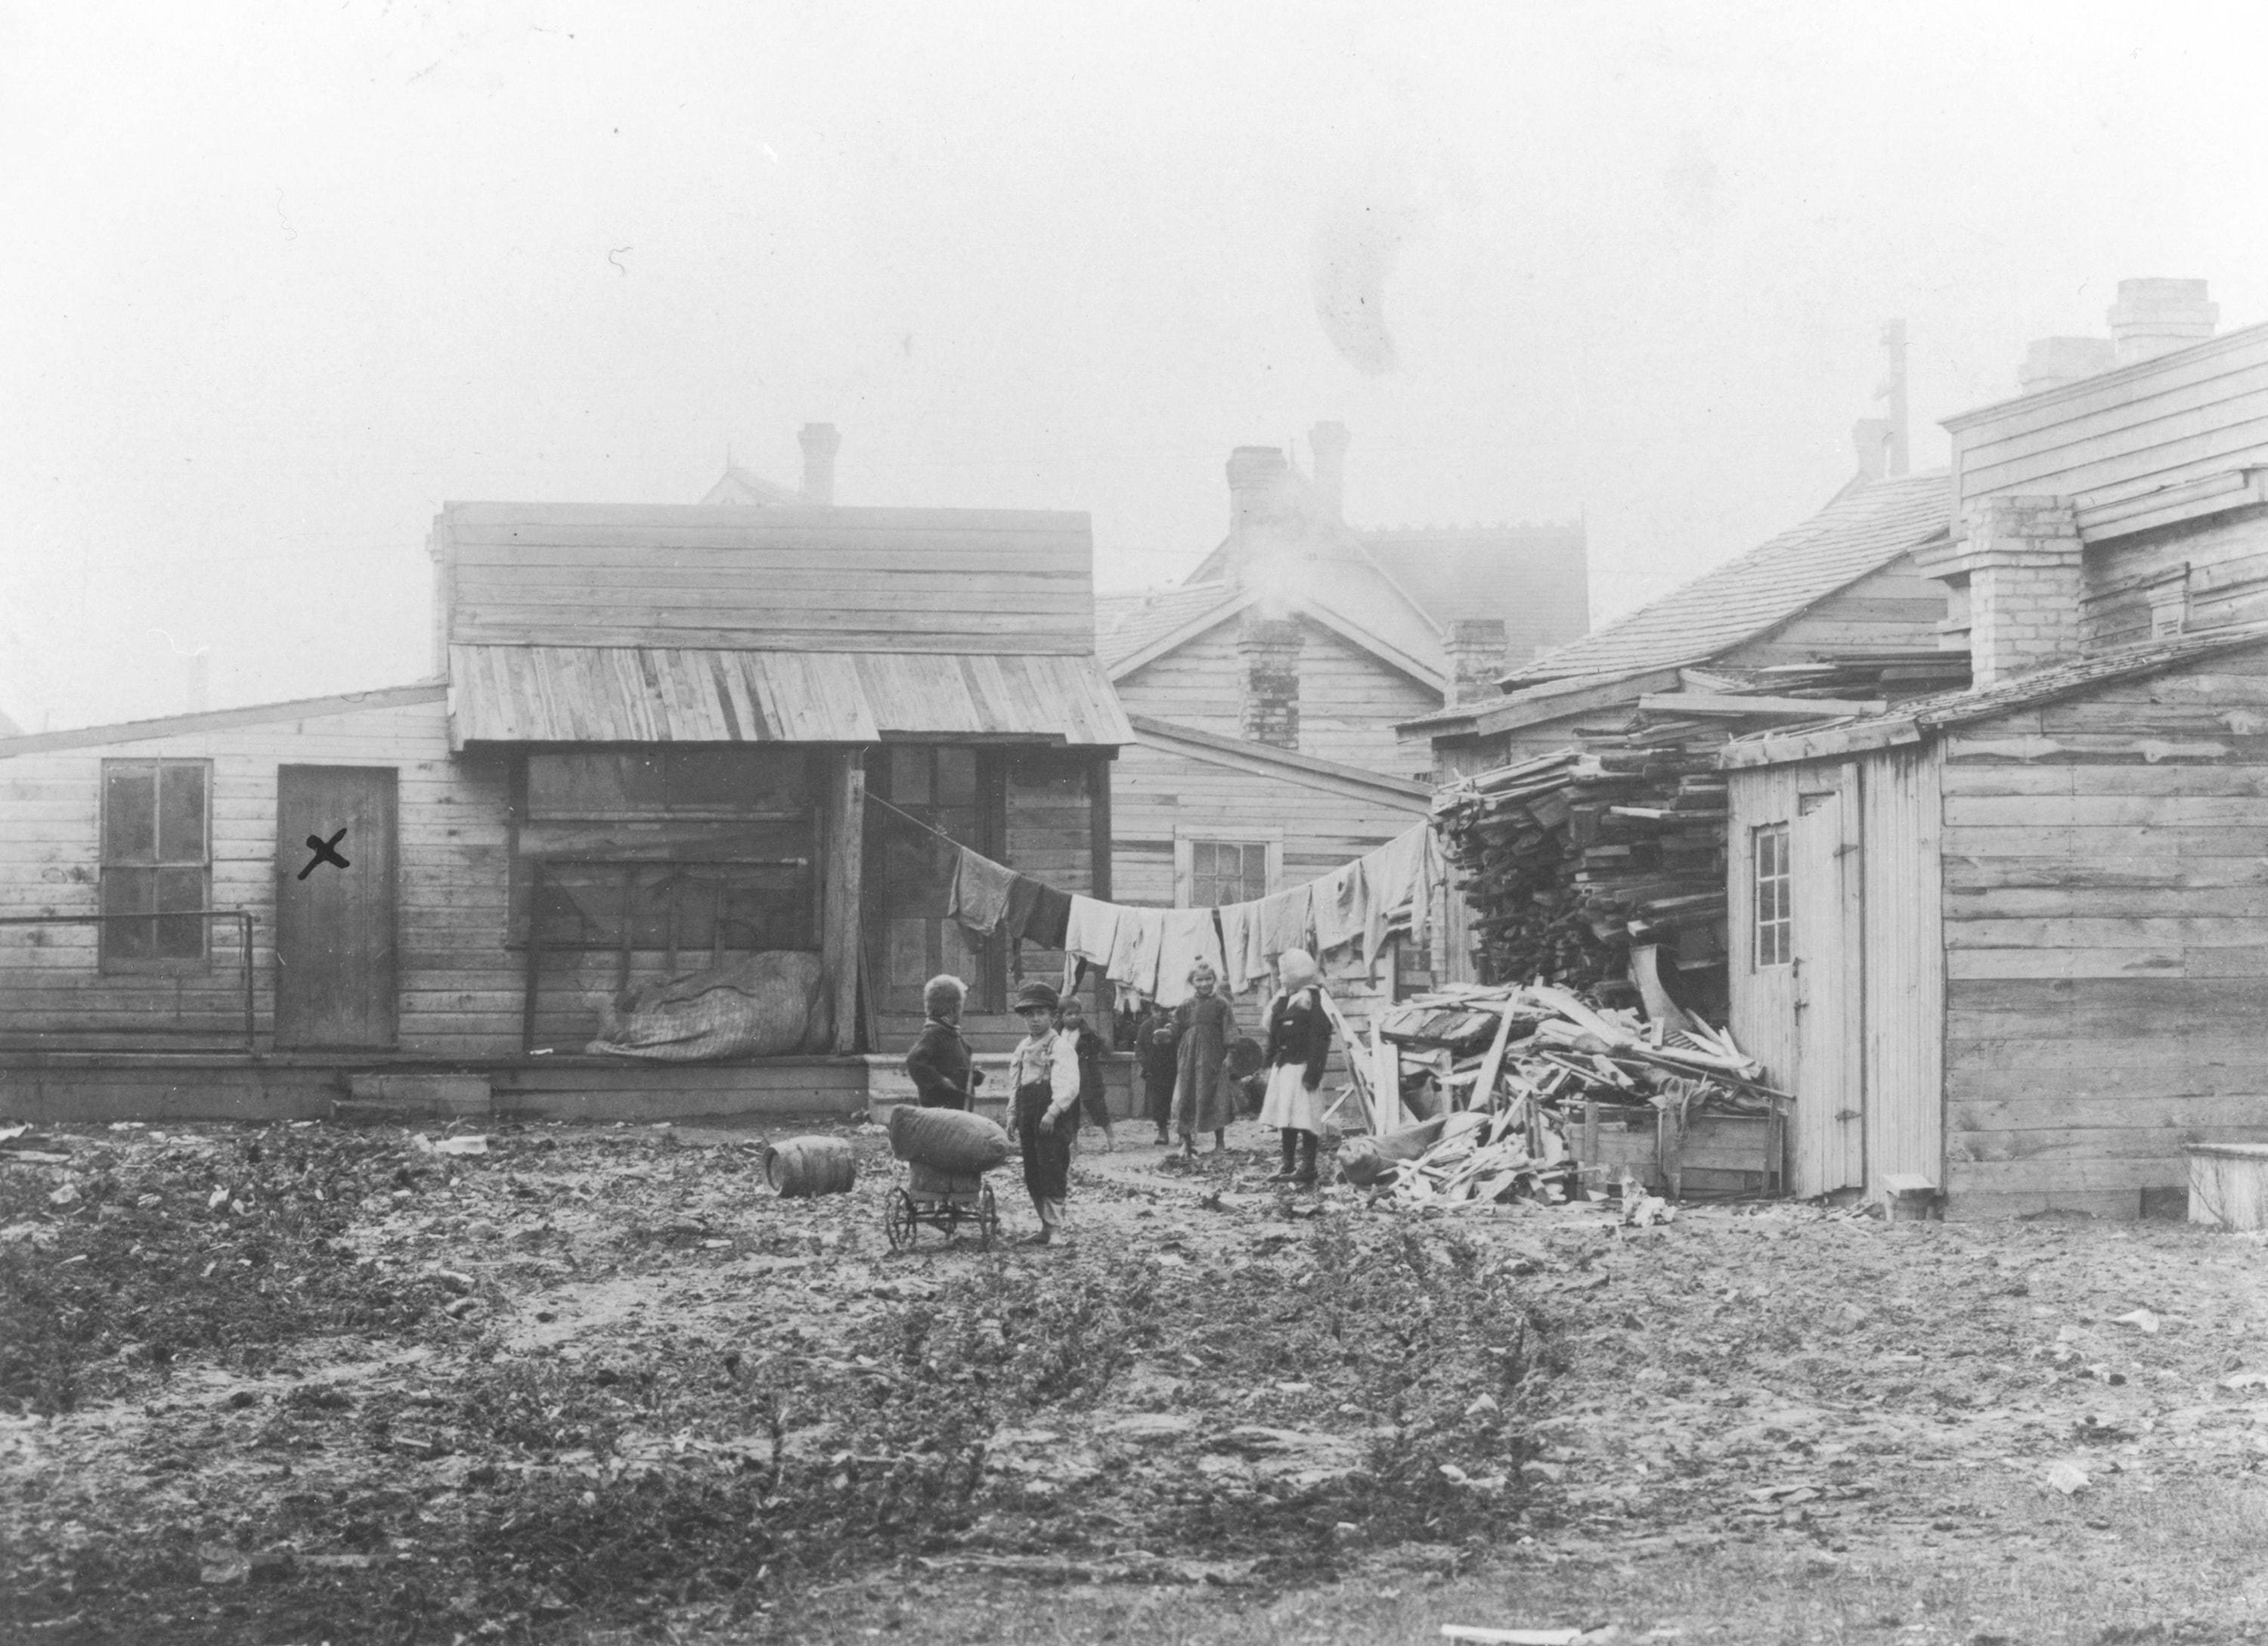 Working and living conditions were appalling for many people during the turn of the 20th century in Winnipeg. (Archives of Manitoba)